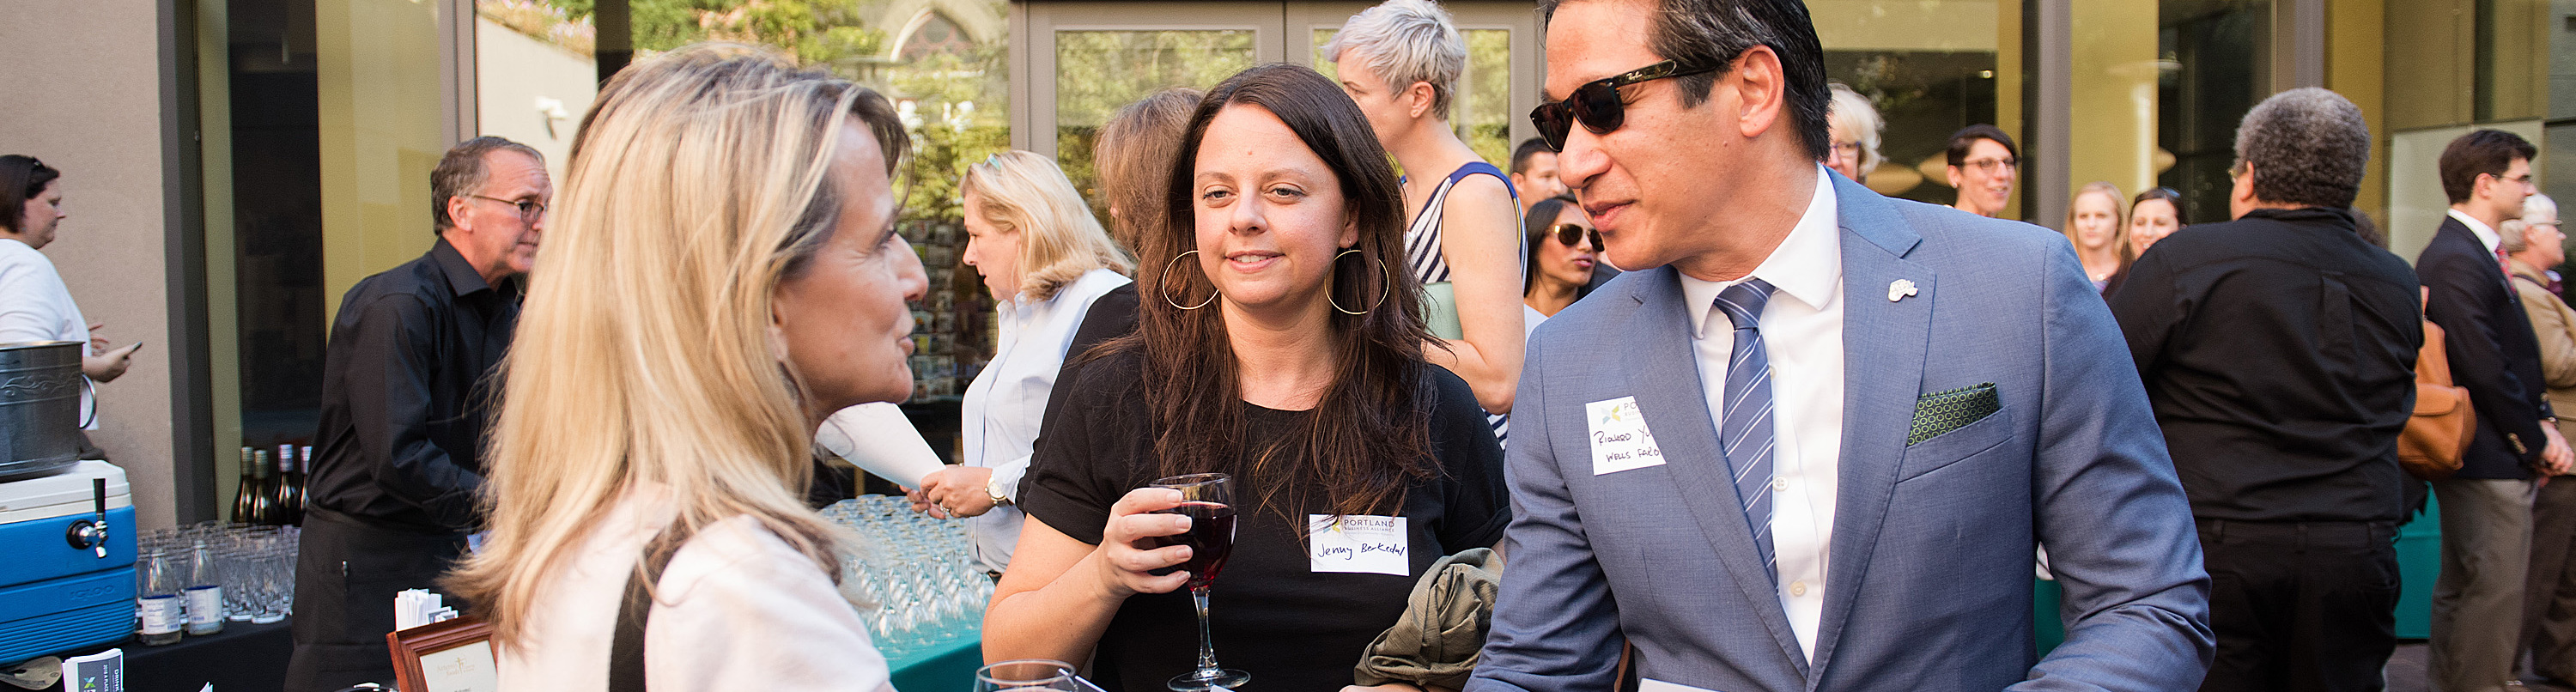 Portland Business Alliance - Events